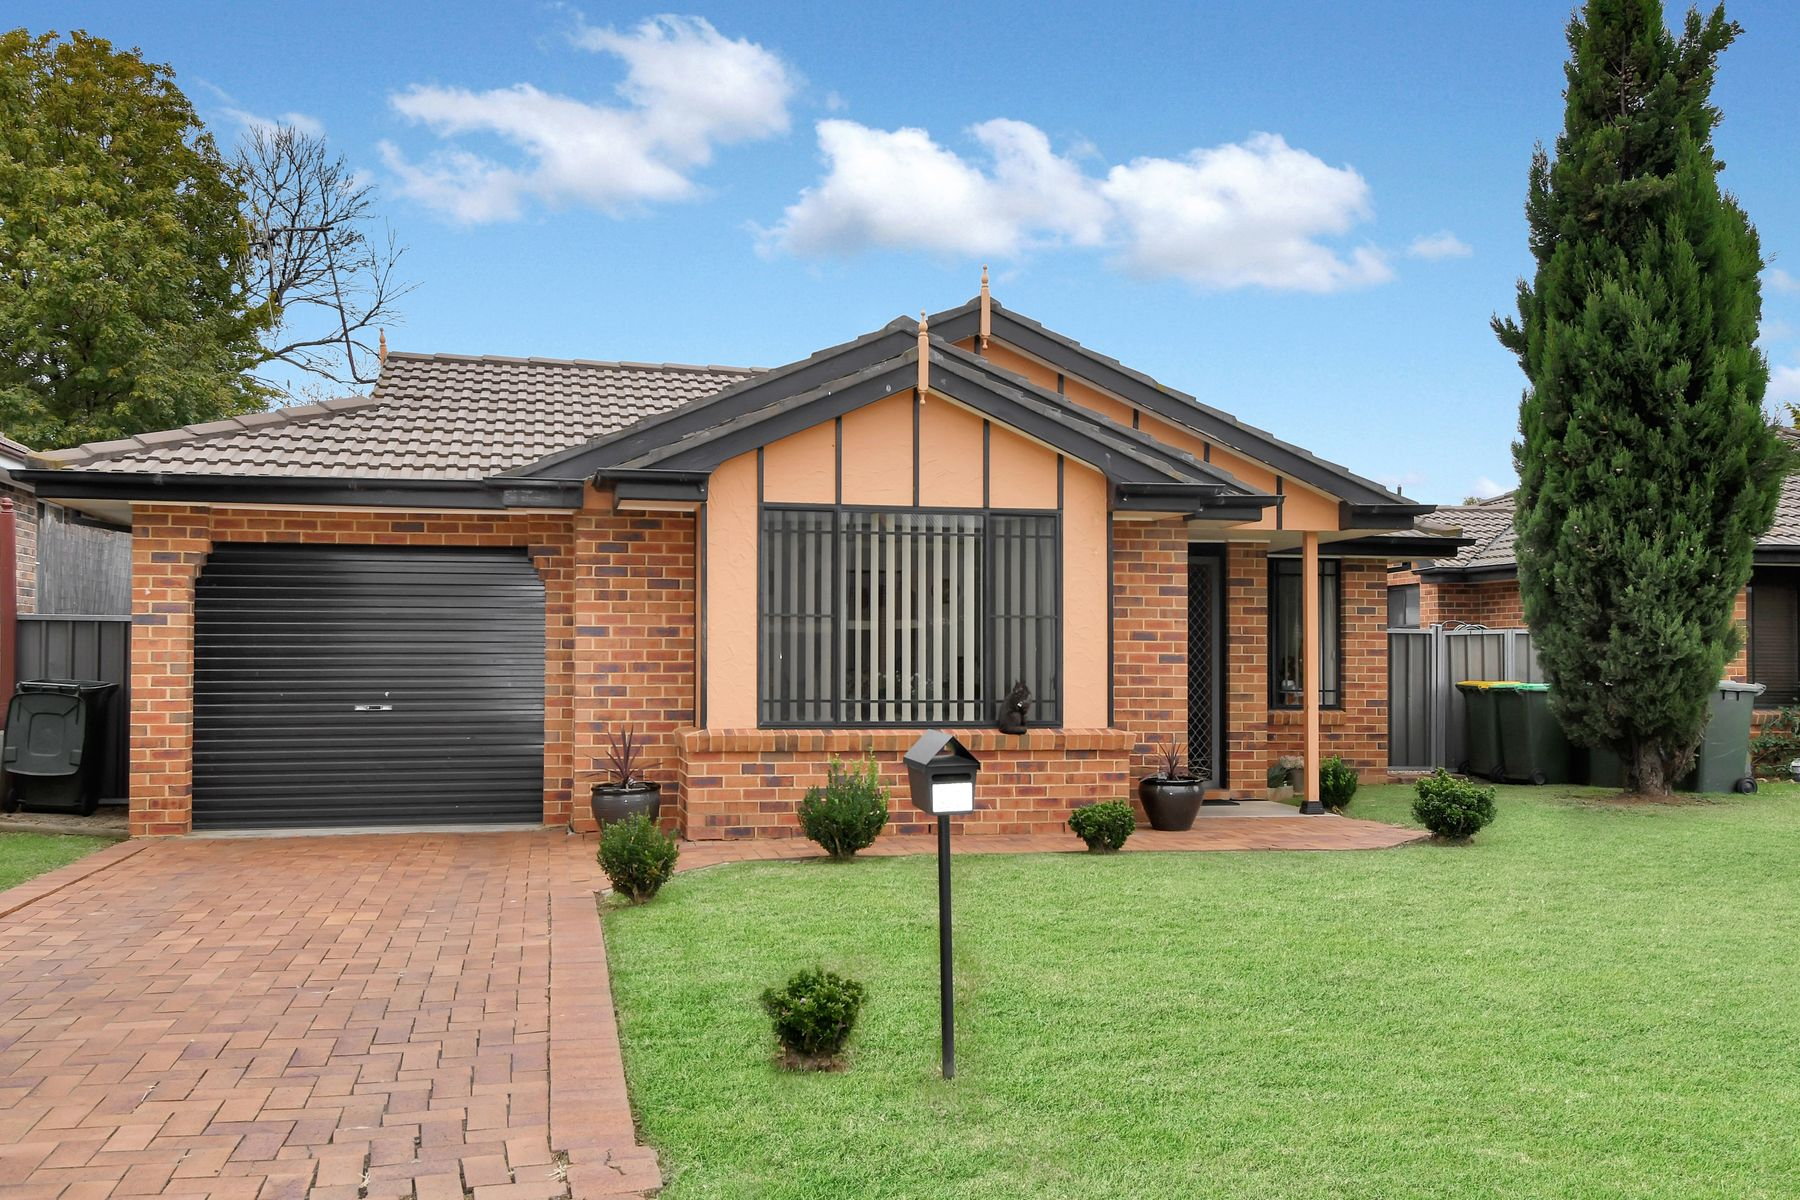 21 Dees Close, Gormans Hill, NSW 2795